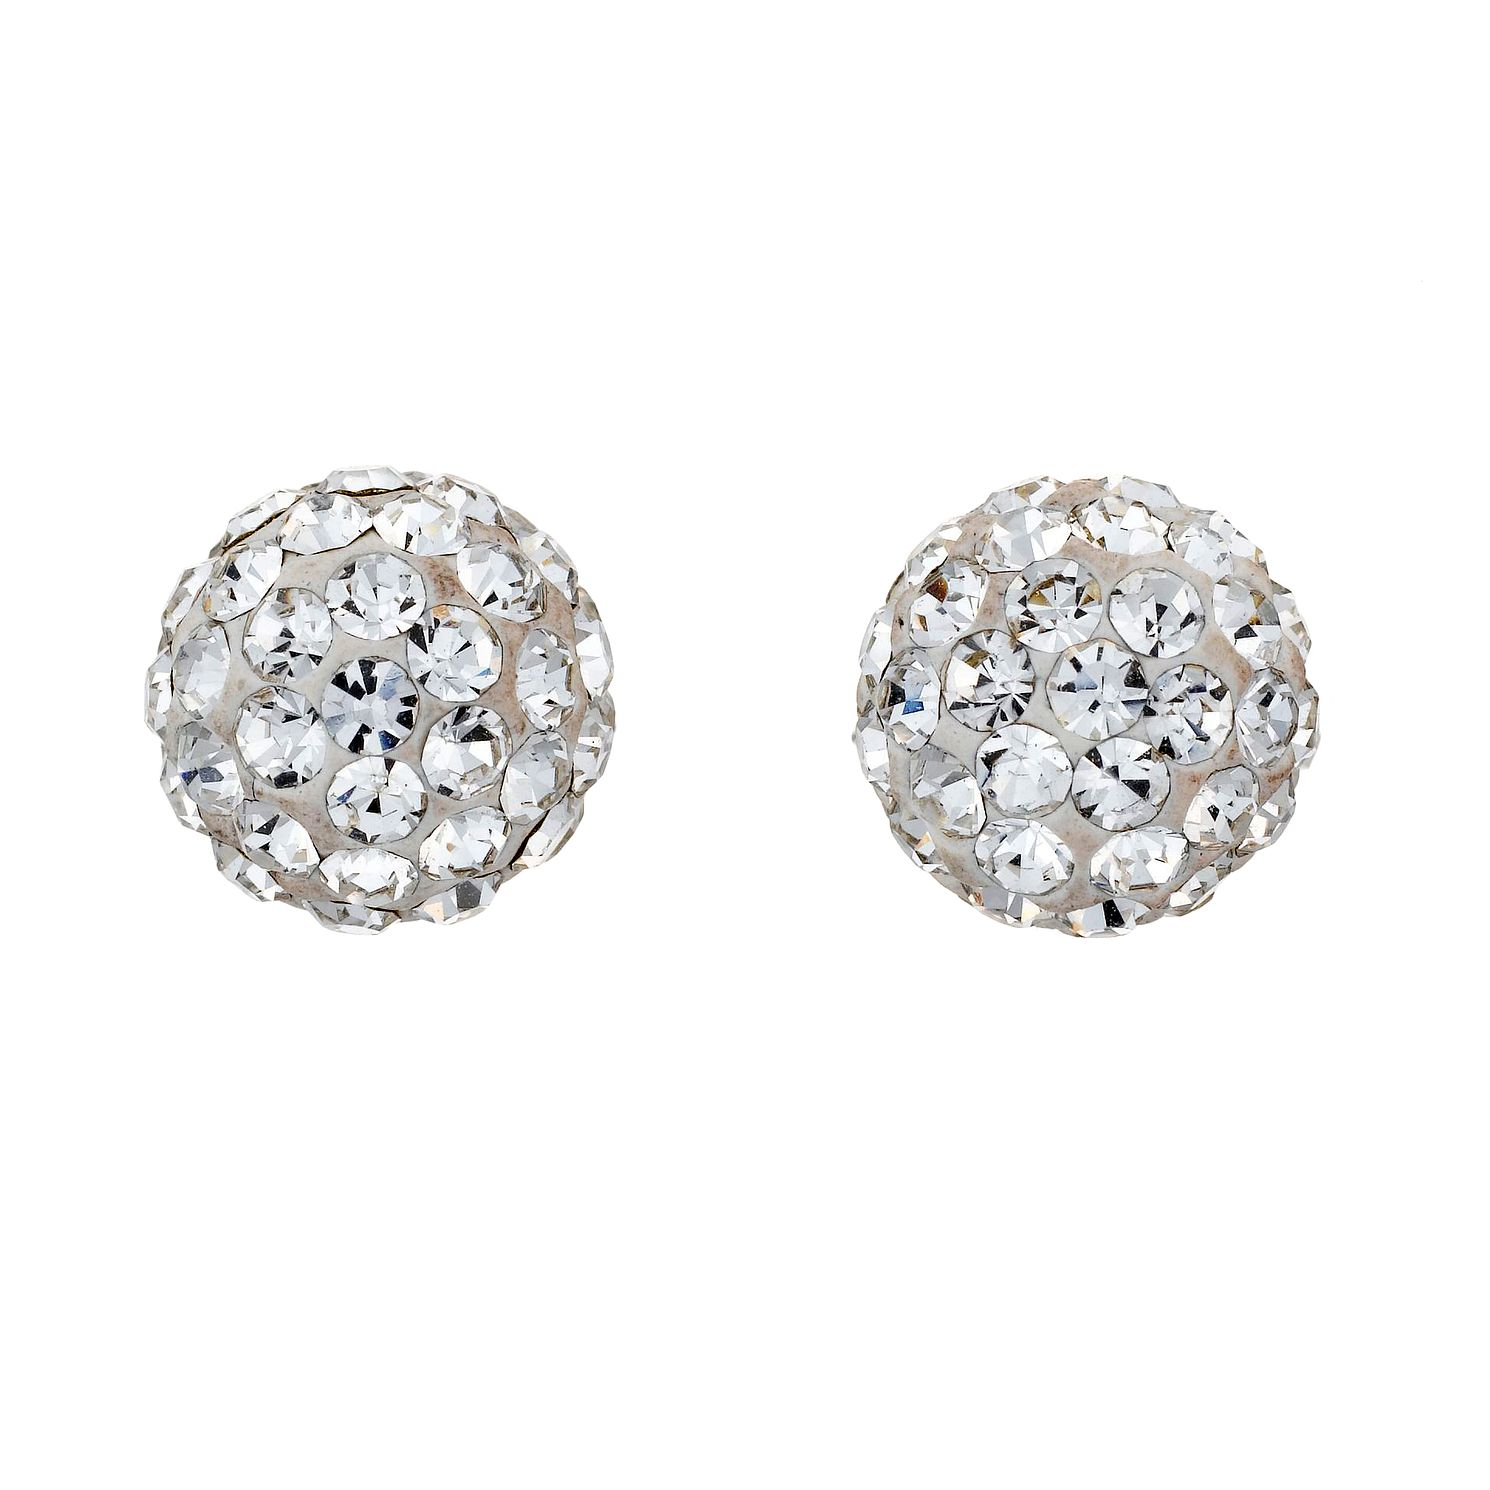 9ct White Gold Crystal Glitter Ball 7mm Stud Earrings - Product number 8120420